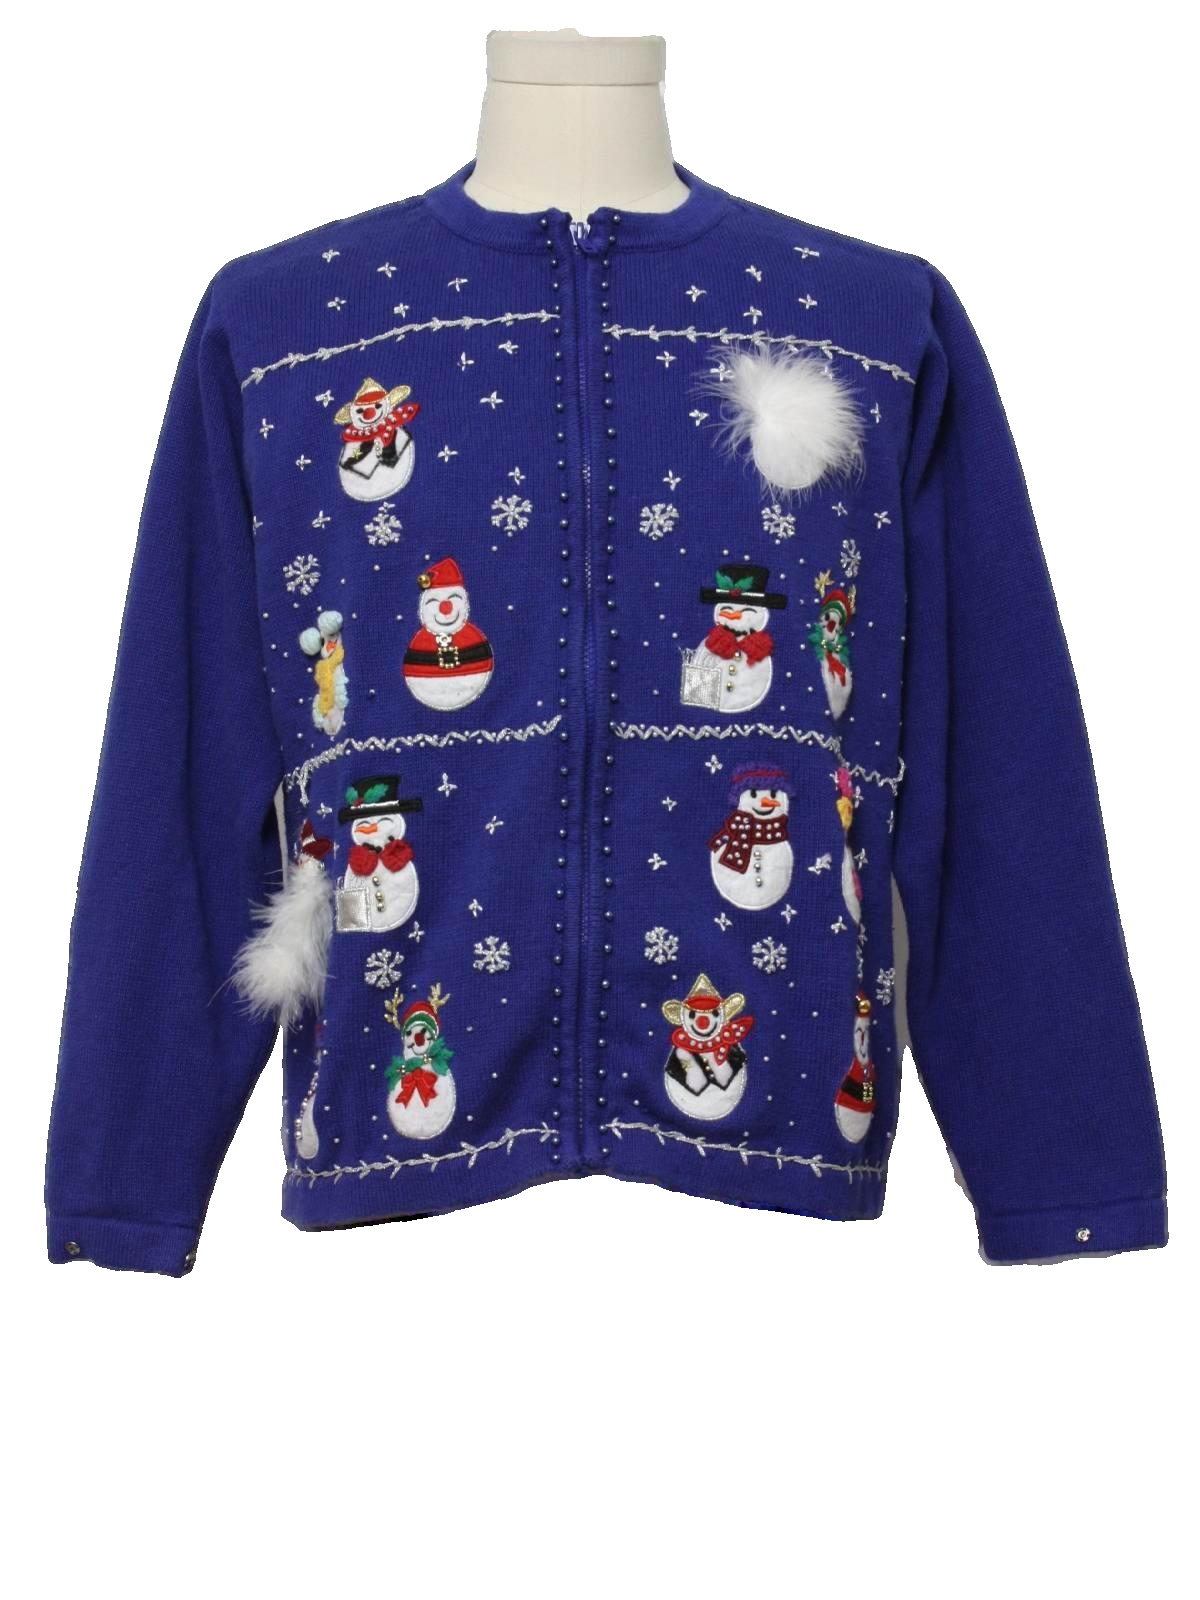 Womens Ugly Christmas Sweater: -BP Design- Womens blue ...